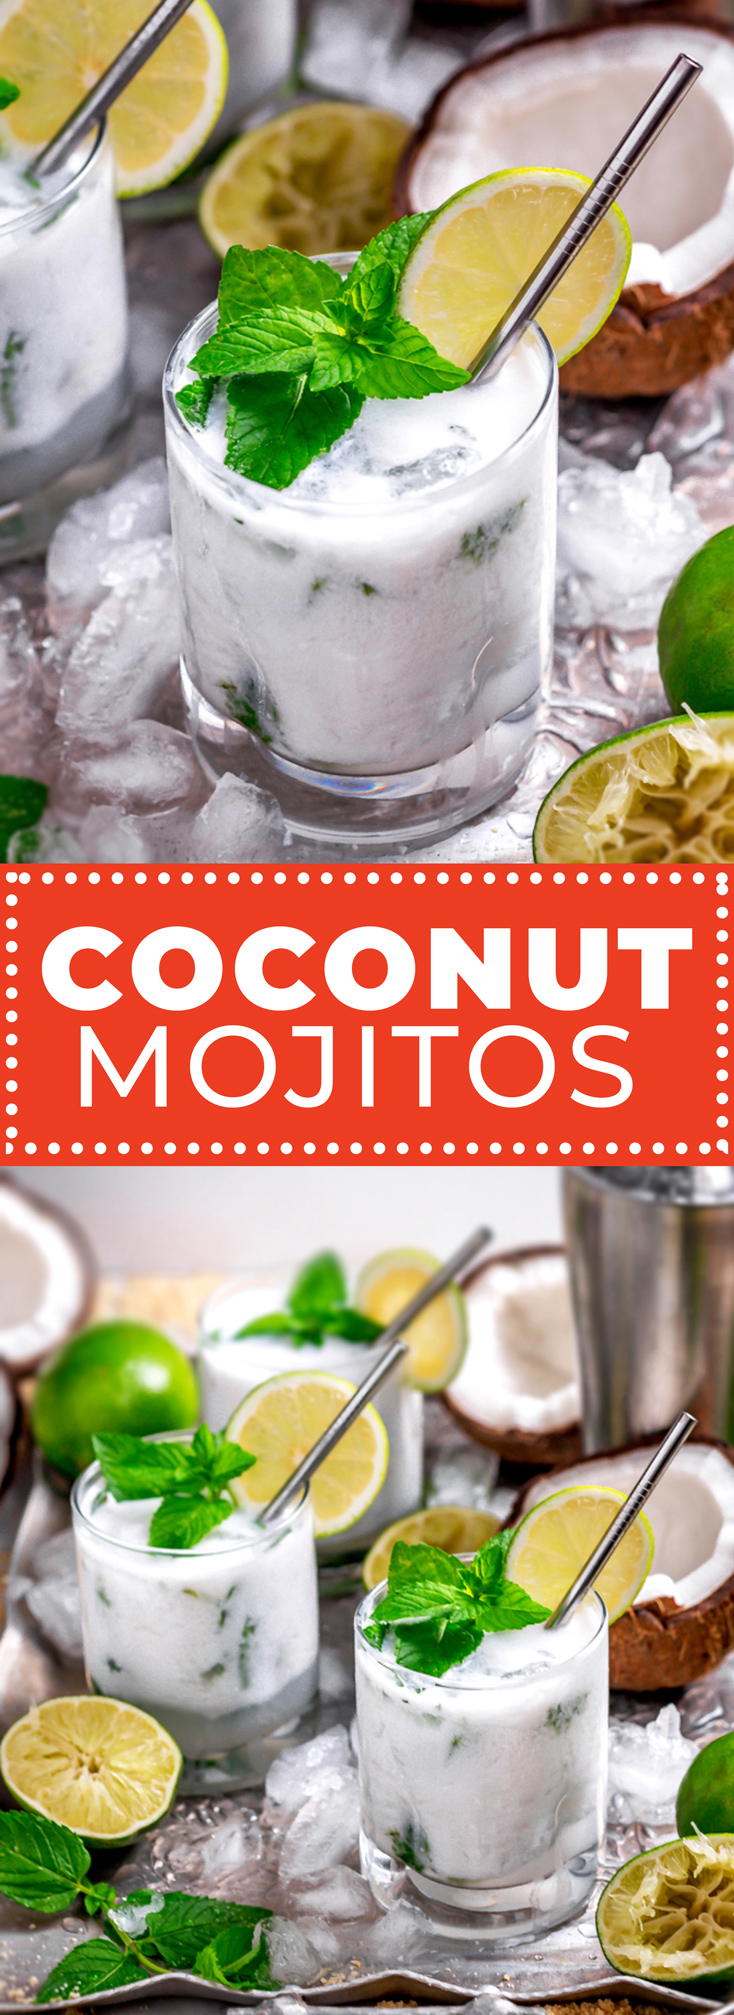 Boat deck or roof deck, there's no better way to sip this summer than enjoying a few Coconut Mojitos. A refreshing mix of rum, lime, and mint mingle with creamy coconut for a cocktail that turns any party into a vacation. | hostthetoast.com